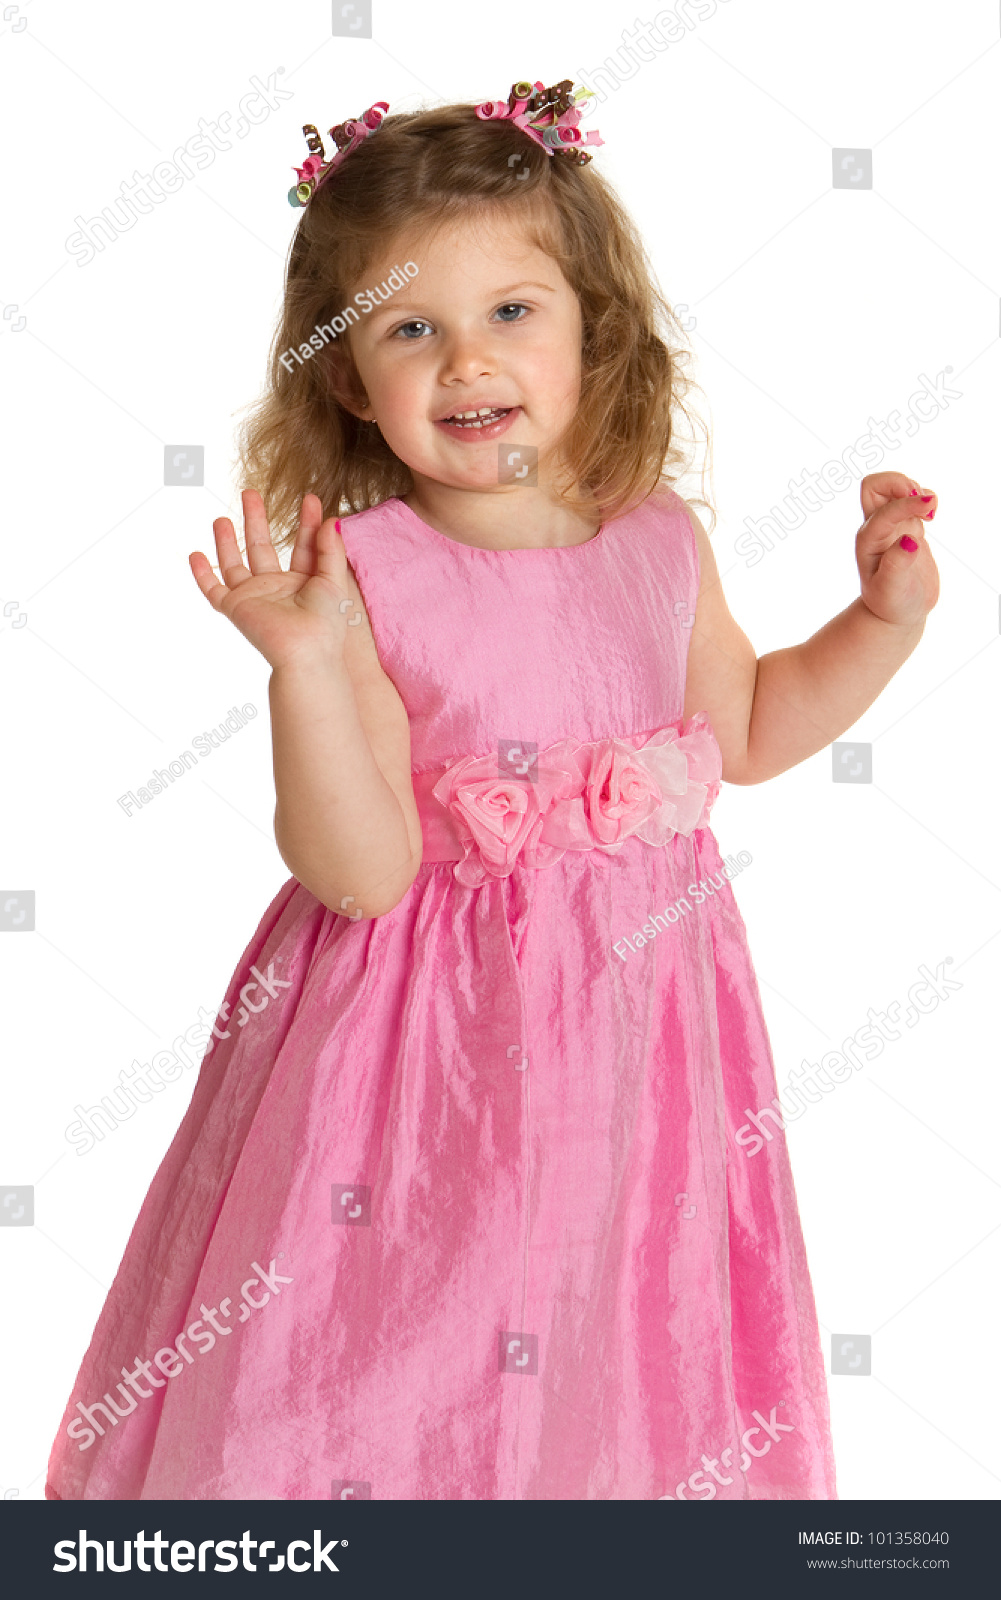 55ca79b04 3 Year Old Little Girl Pink Stock Photo (Edit Now) 101358040 ...